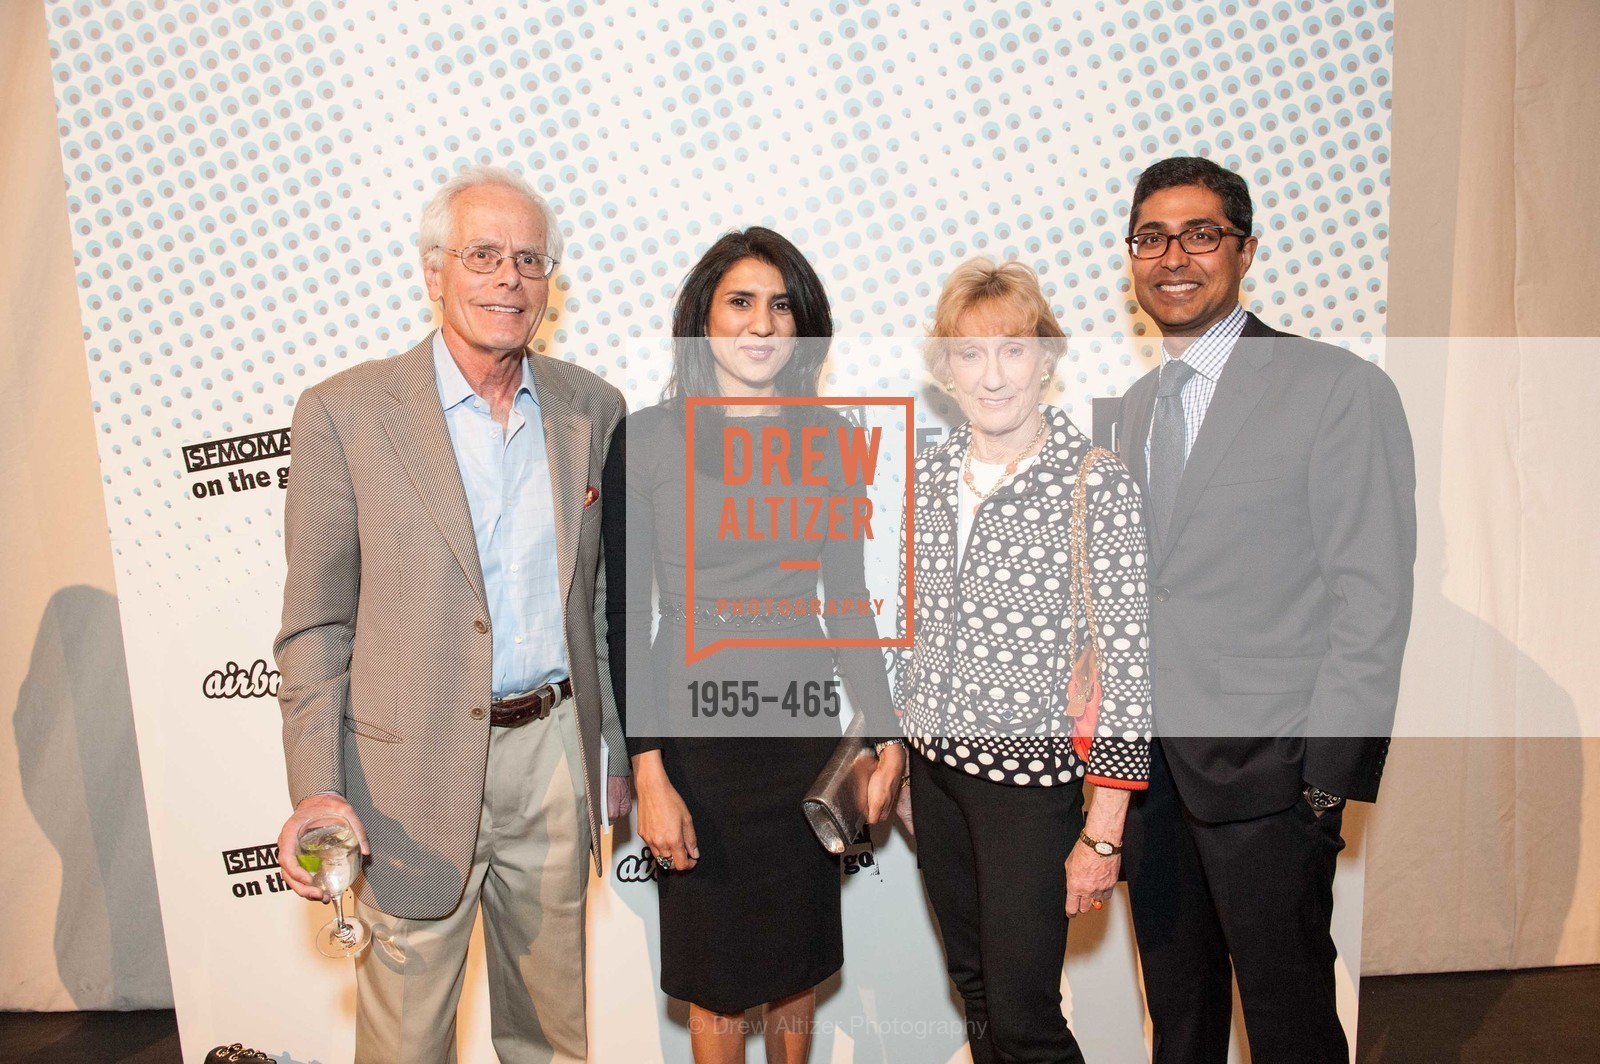 Joachim Bechtle, Alka Agrawal, Nancy Bechtle, Ravin Agrawal, FOG Design + Art Preview Gala, US. US, January 16th, 2014,Drew Altizer, Drew Altizer Photography, full-service agency, private events, San Francisco photographer, photographer california